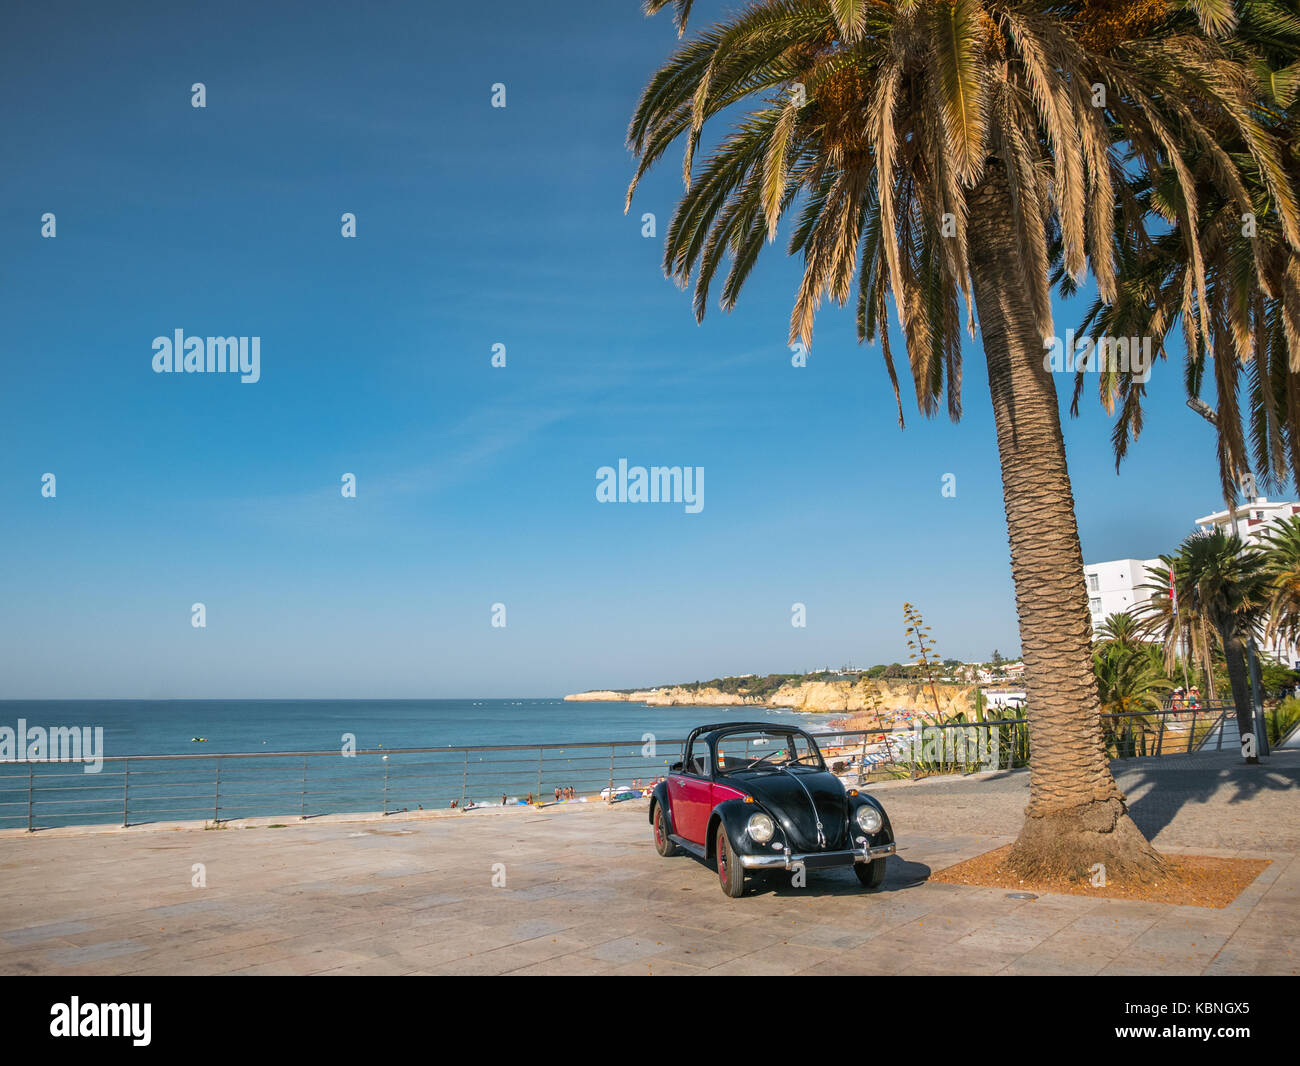 Cabrio beetle on holidays in Algarve, Portugal - Stock Image